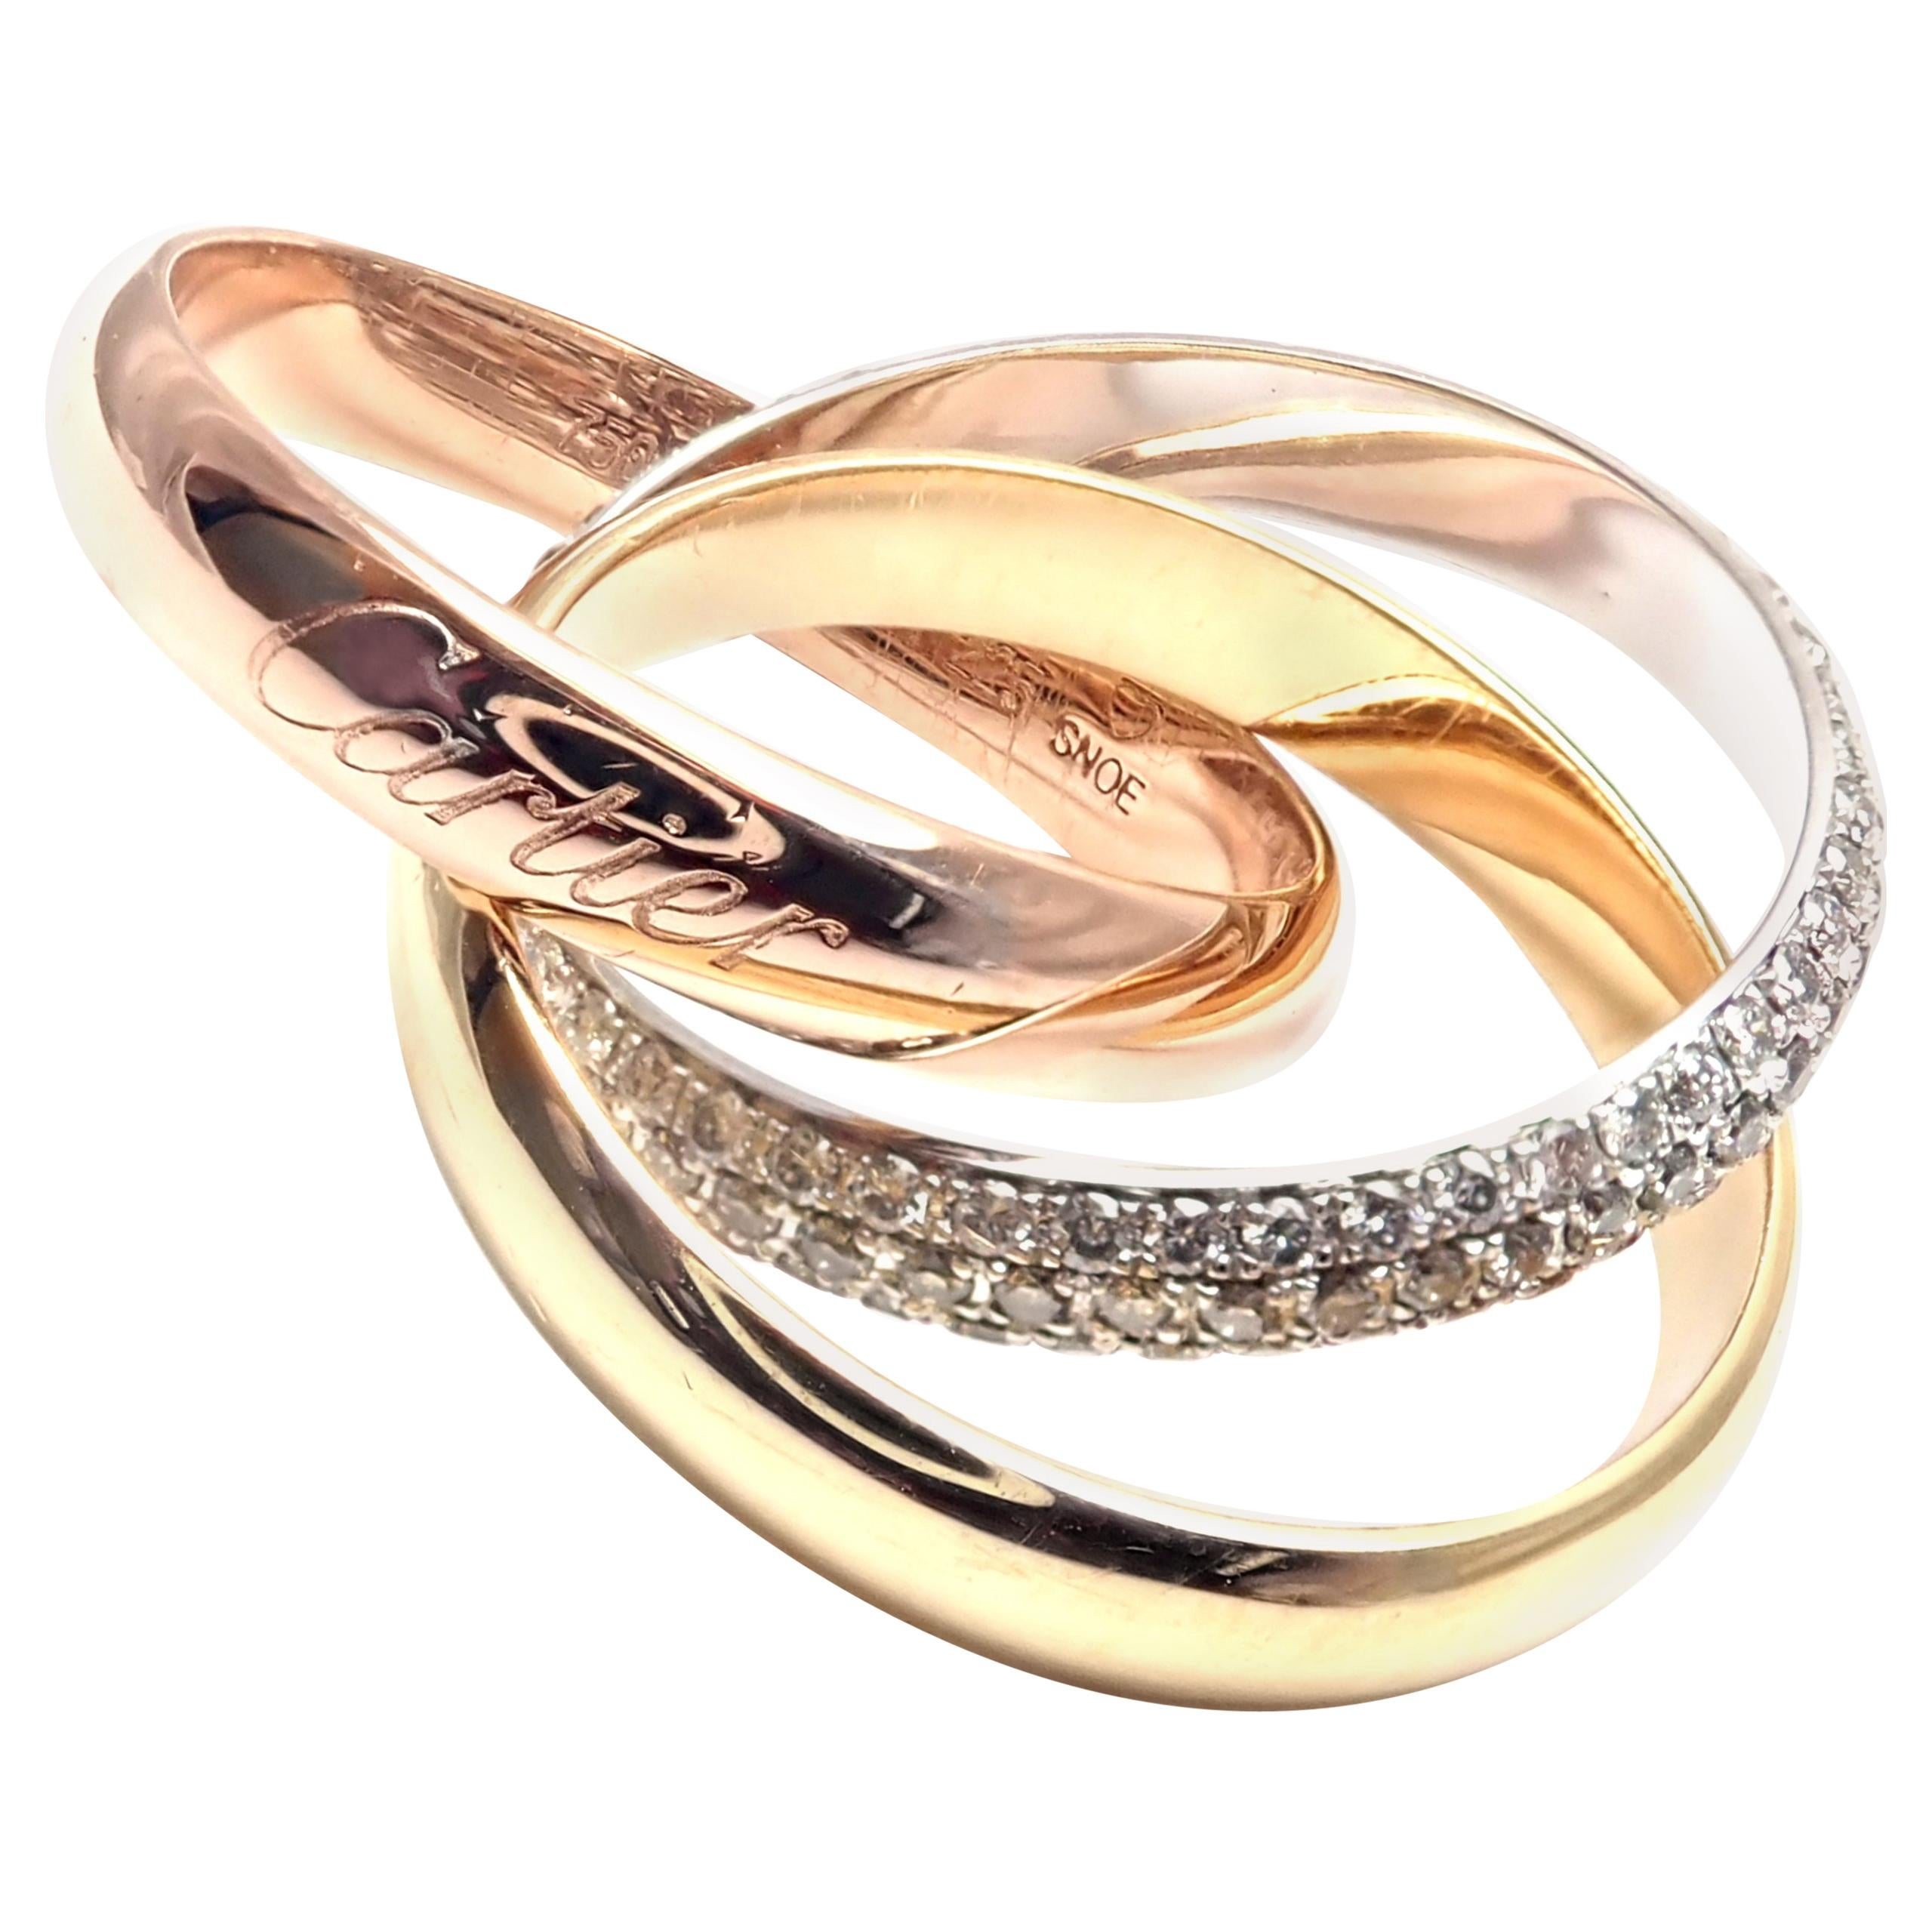 Cartier Classic Diamond Tri-Color Gold Trinity Band Ring